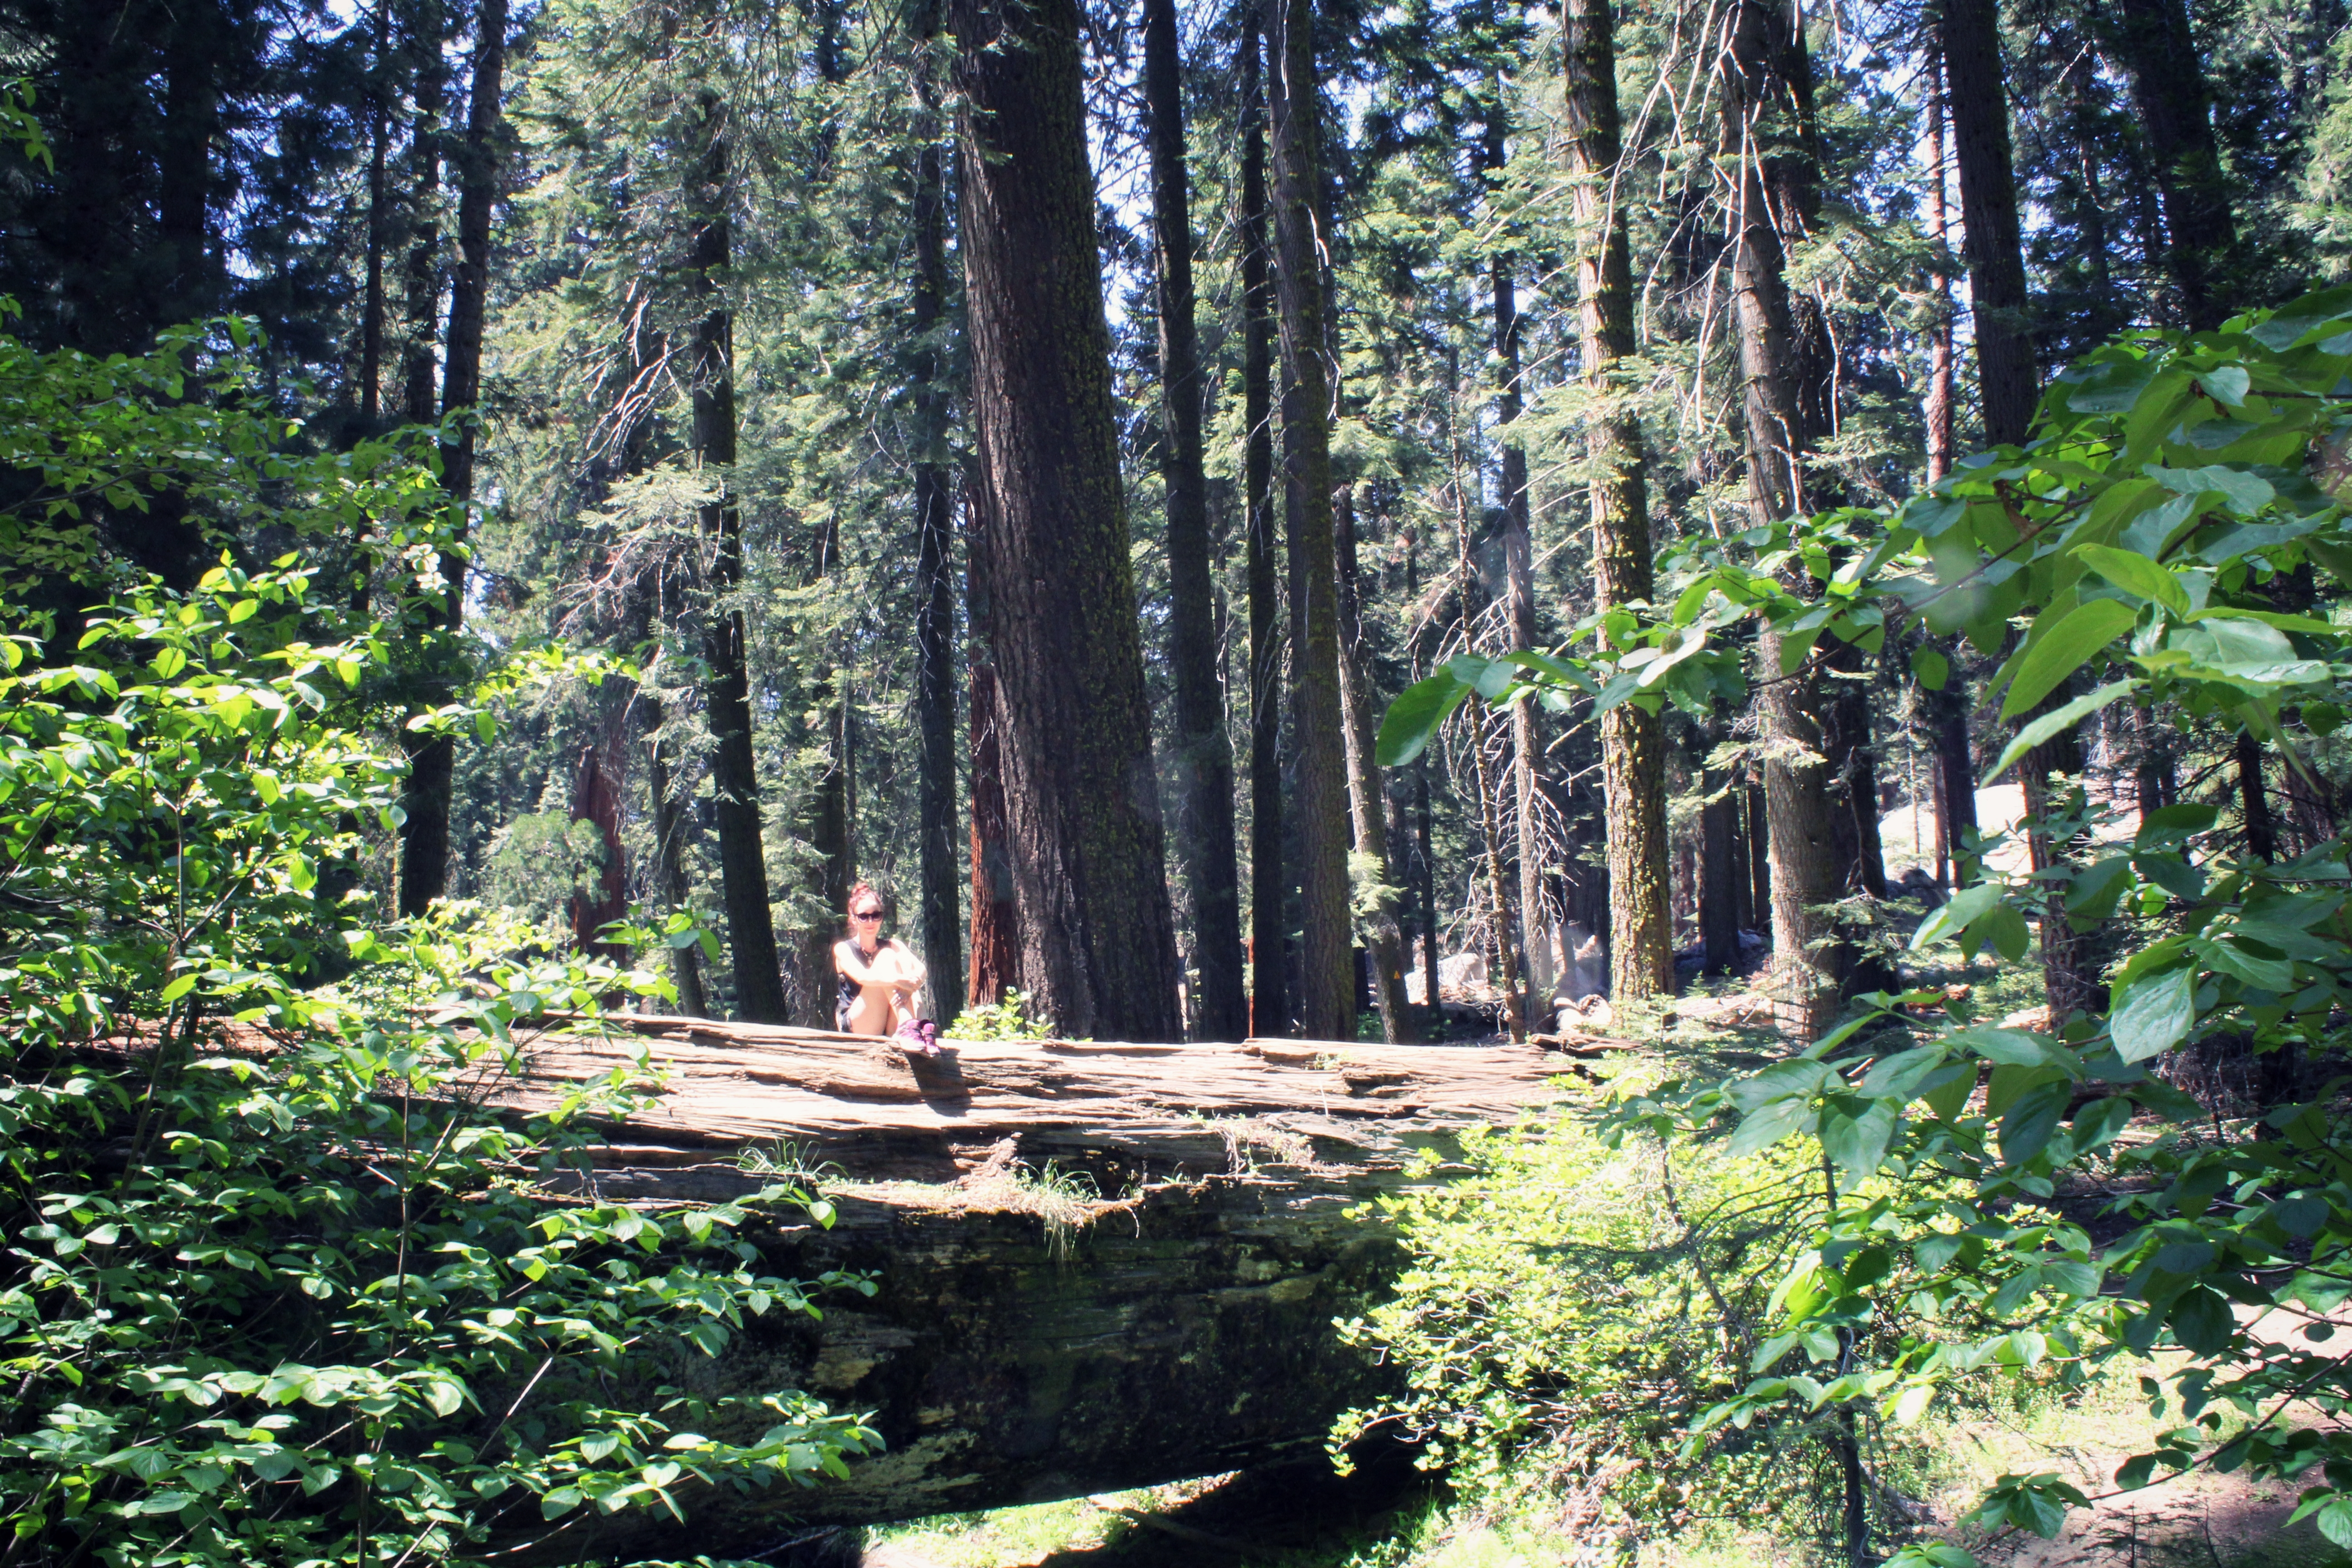 Girl sitting on a tree in Sequoia National Park